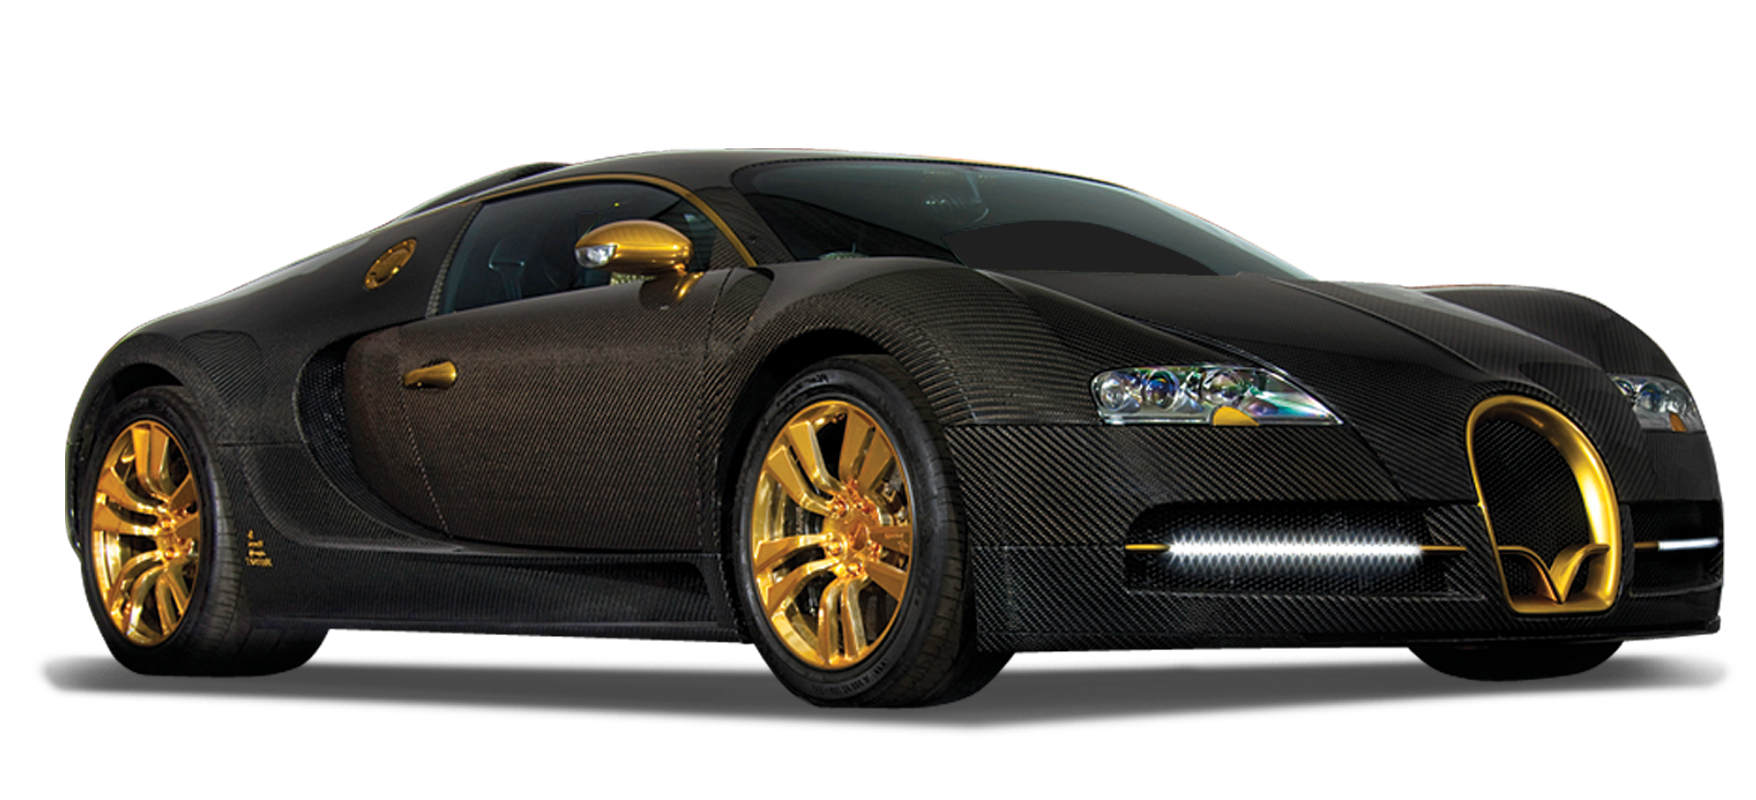 French car clipart picture royalty free library Bugatti PNG Image - PurePNG | Free transparent CC0 PNG Image Library picture royalty free library